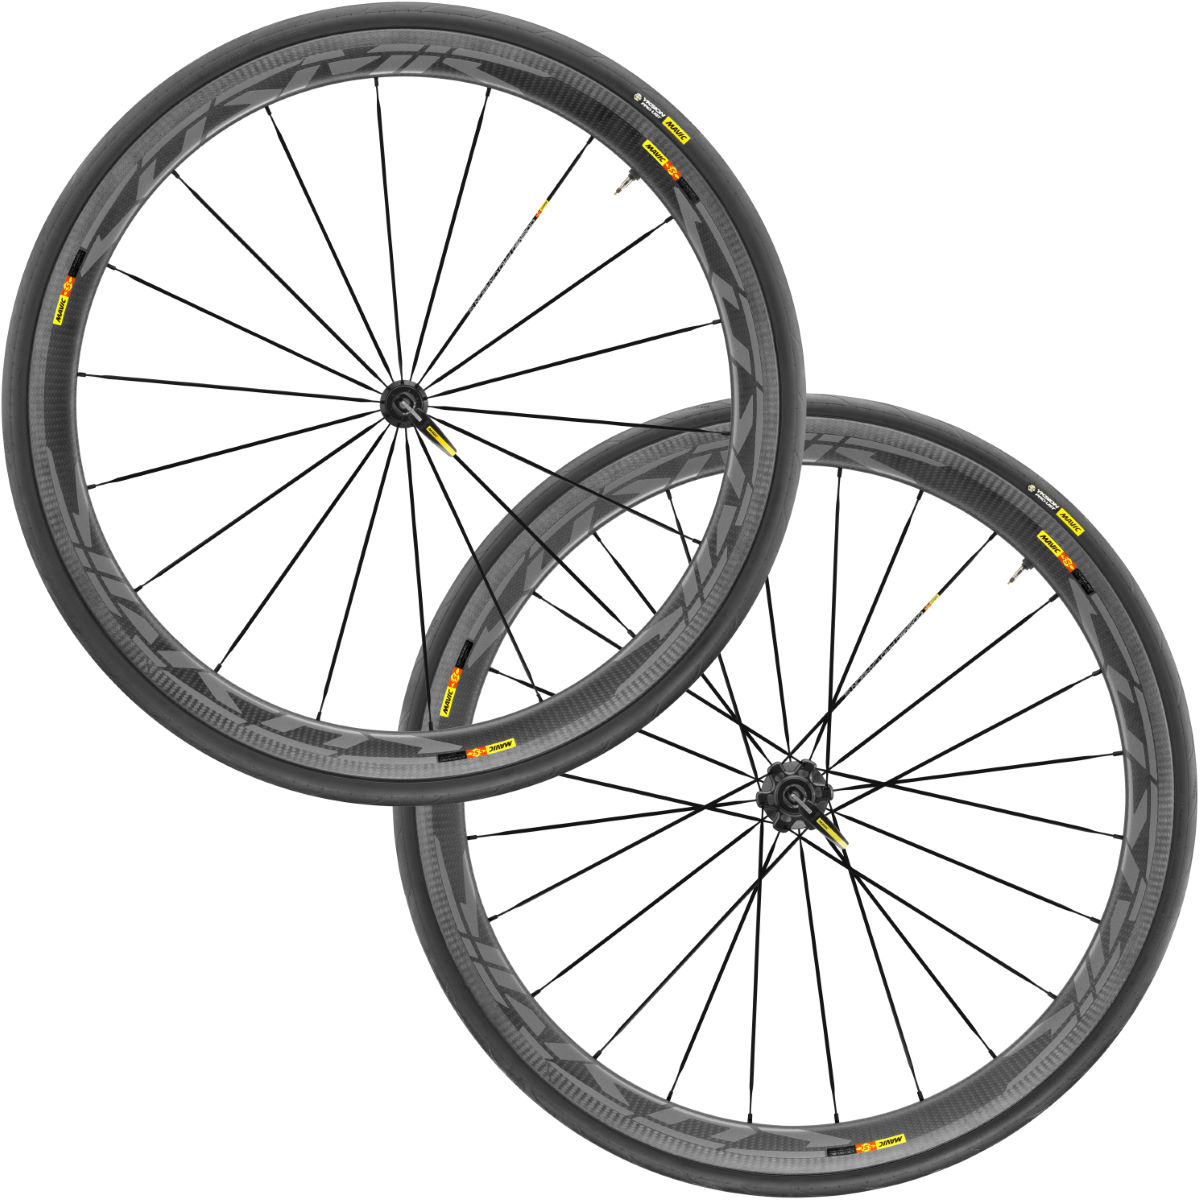 Wheel set Mavic Cosmic Pro Carbon SL (UST) - Competition wheels